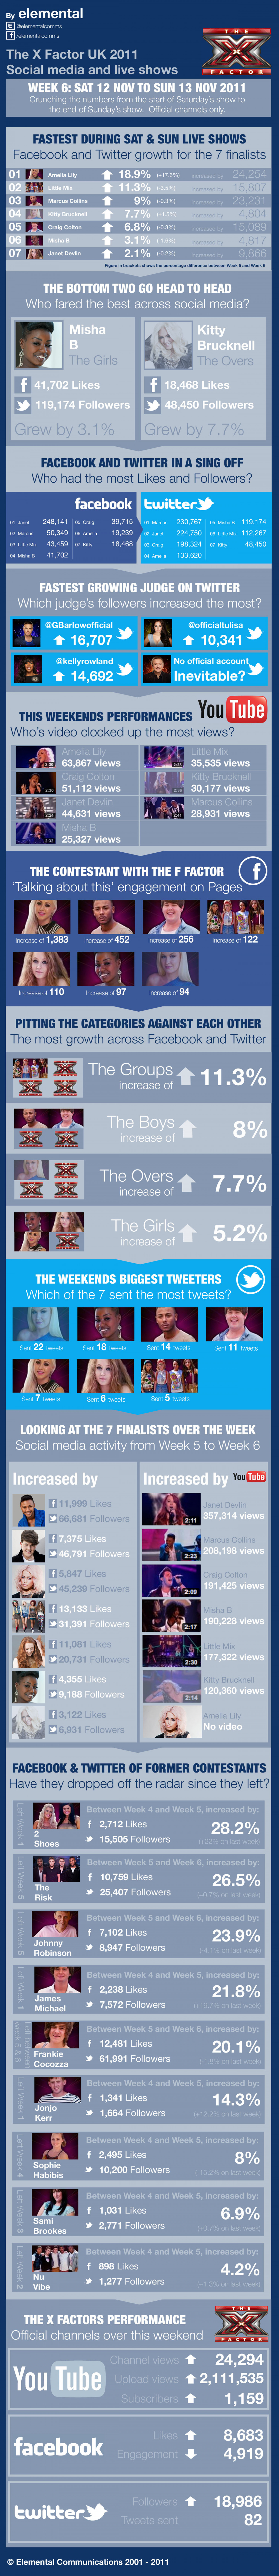 X Factor social media infographic for Week 6 Infographic